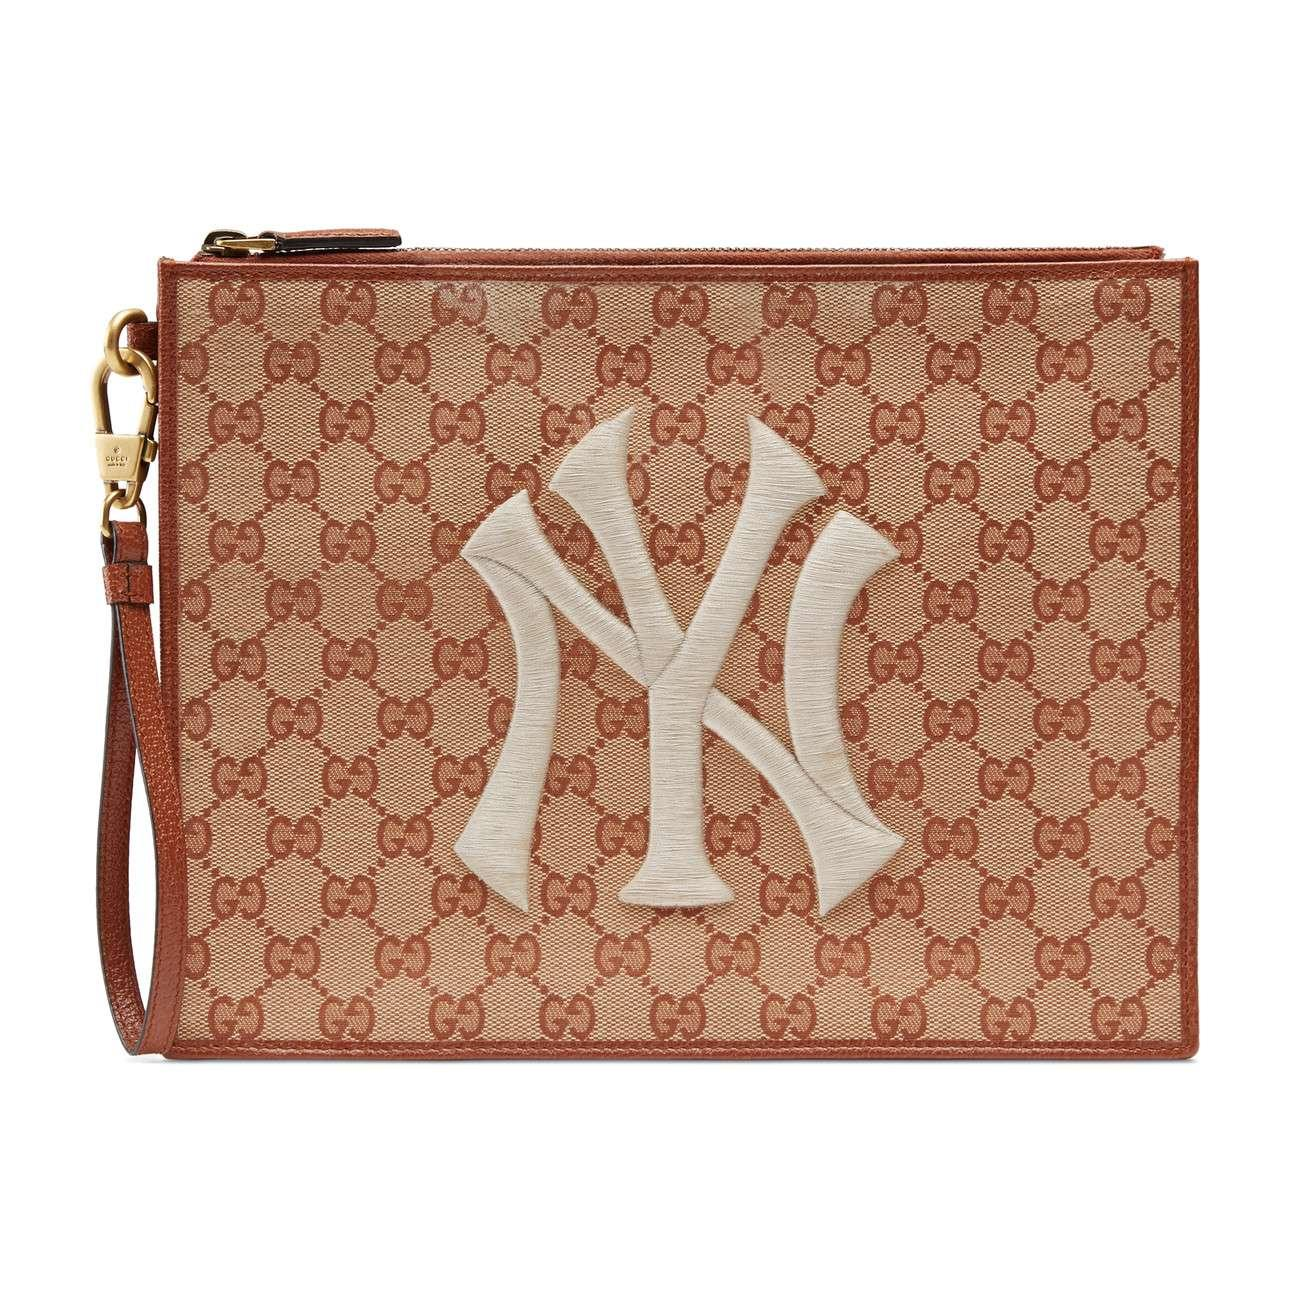 Lyst - Gucci Original GG Pouch With Ny Yankeestm Patch Pink in Pink ... 35161c70c29da